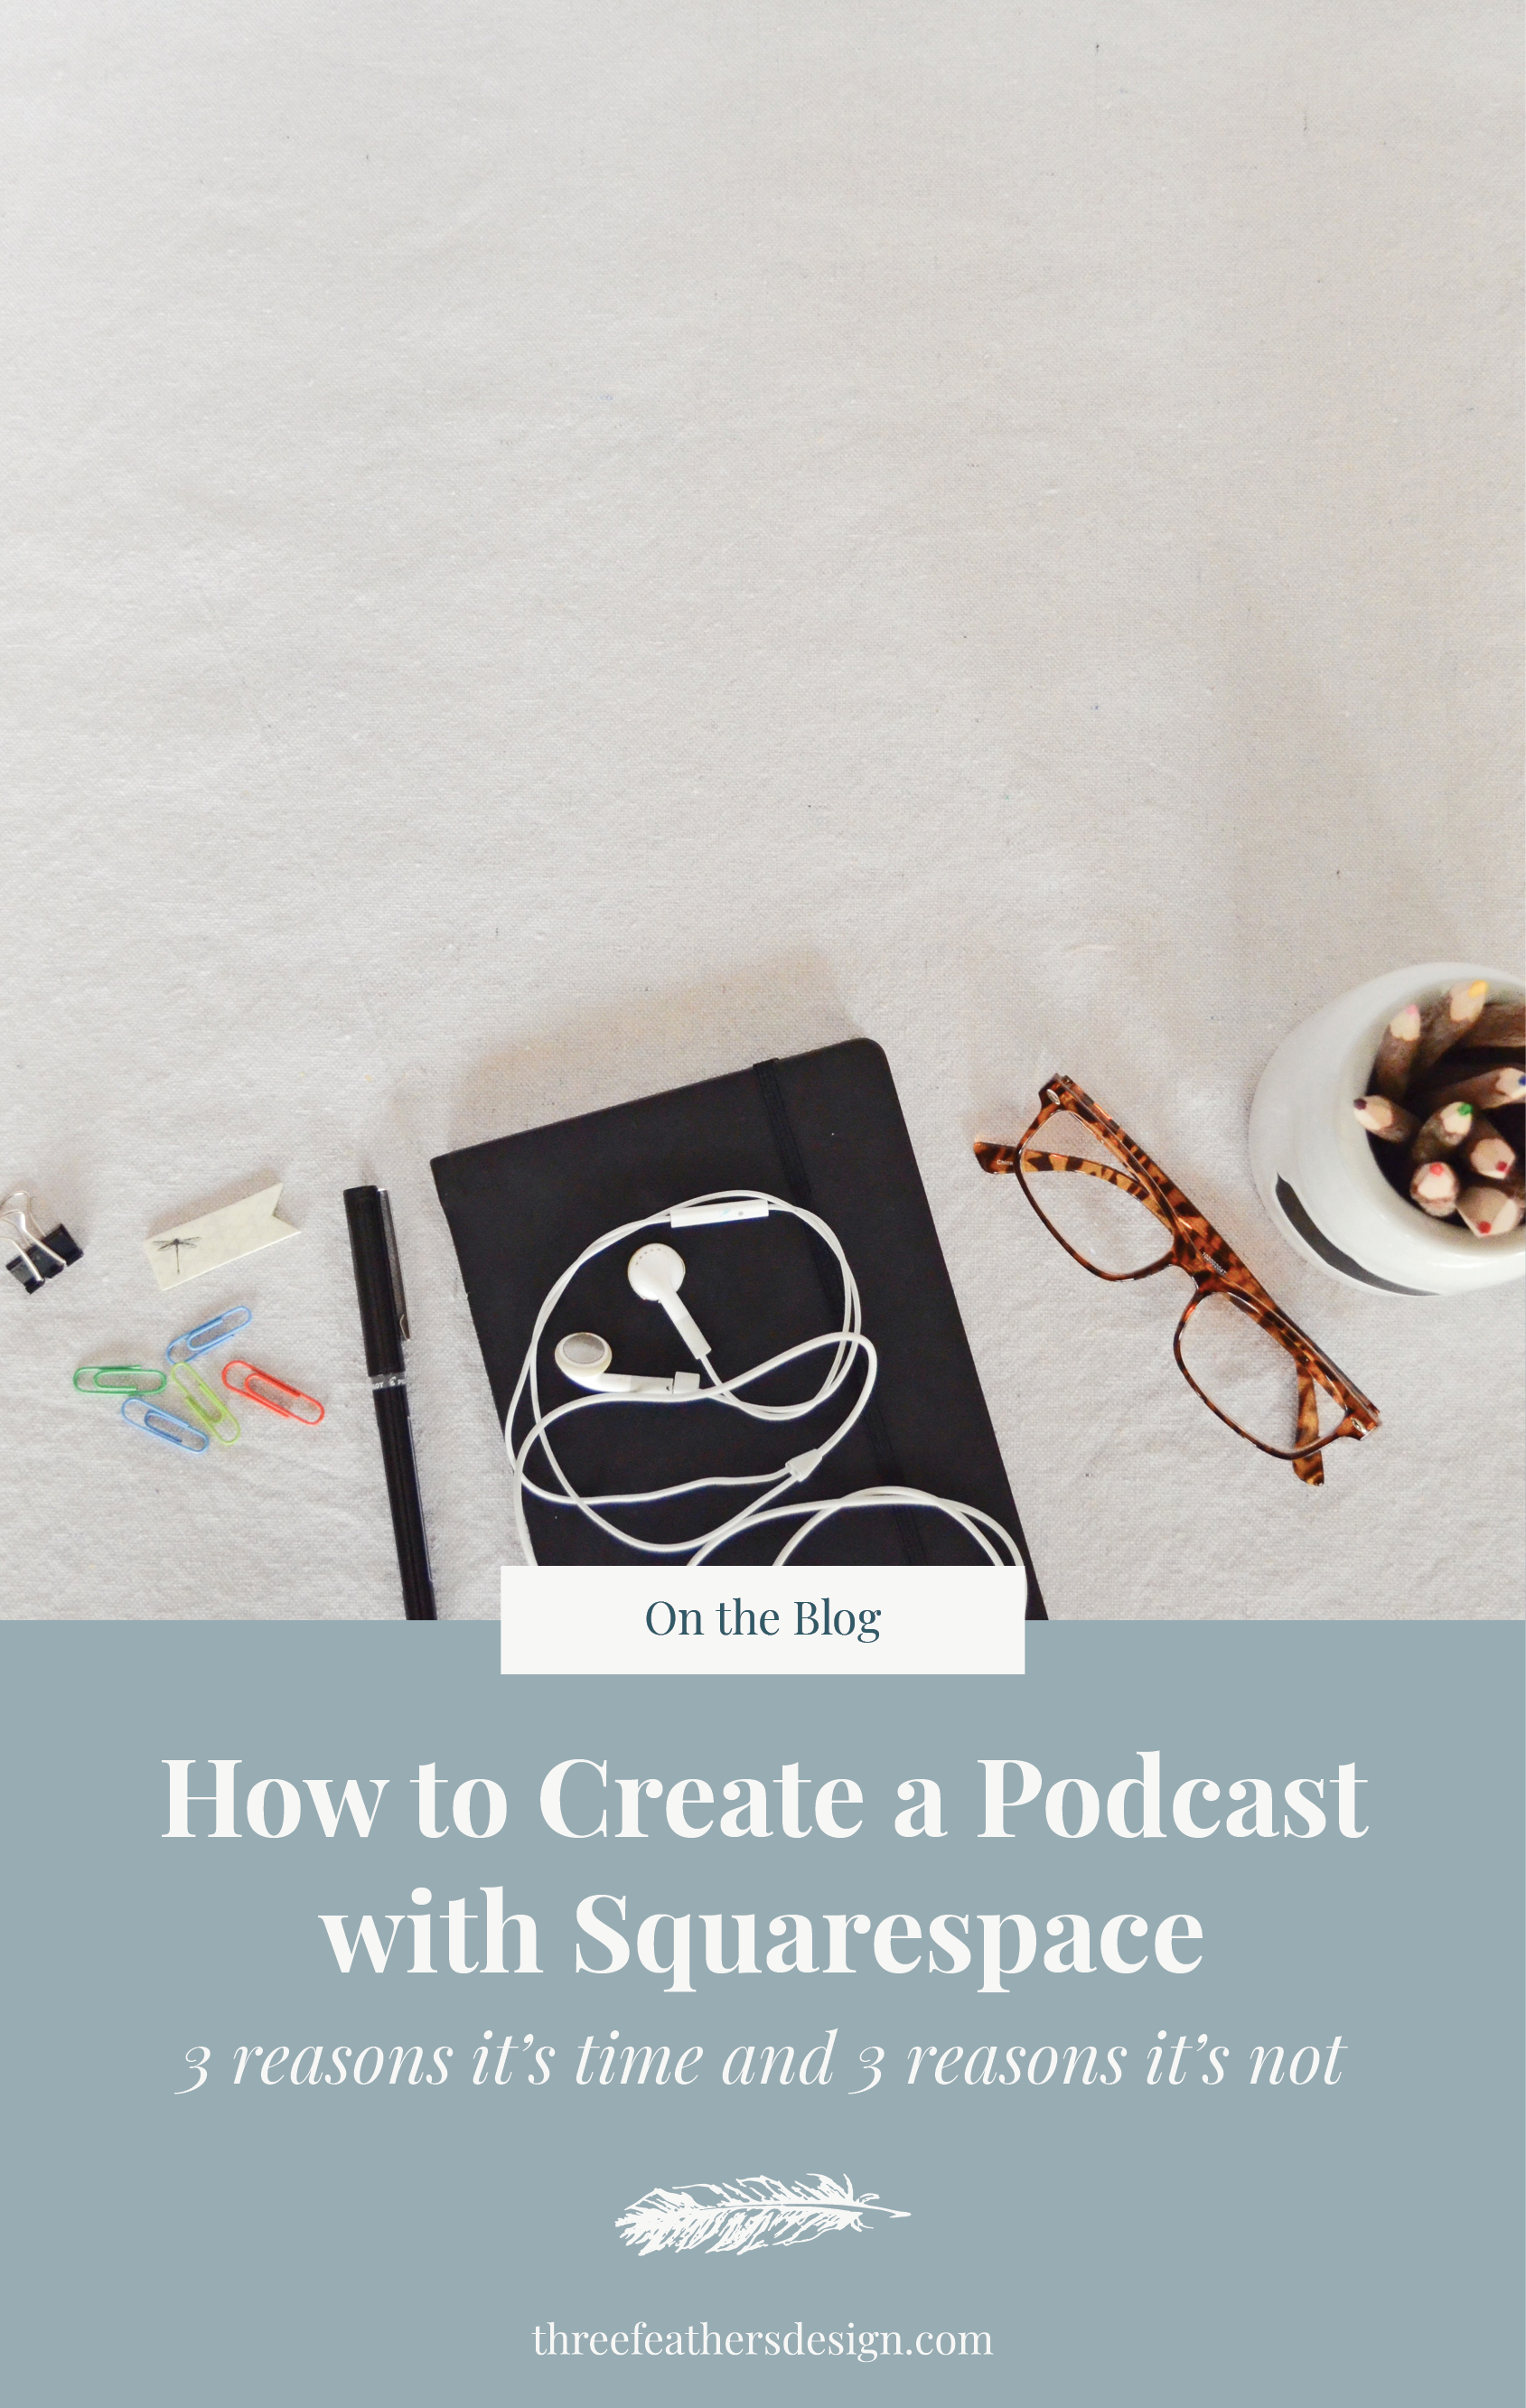 How to Create a Podcast with Squarespace   Three Feathers Design   threefeathersdesign.com